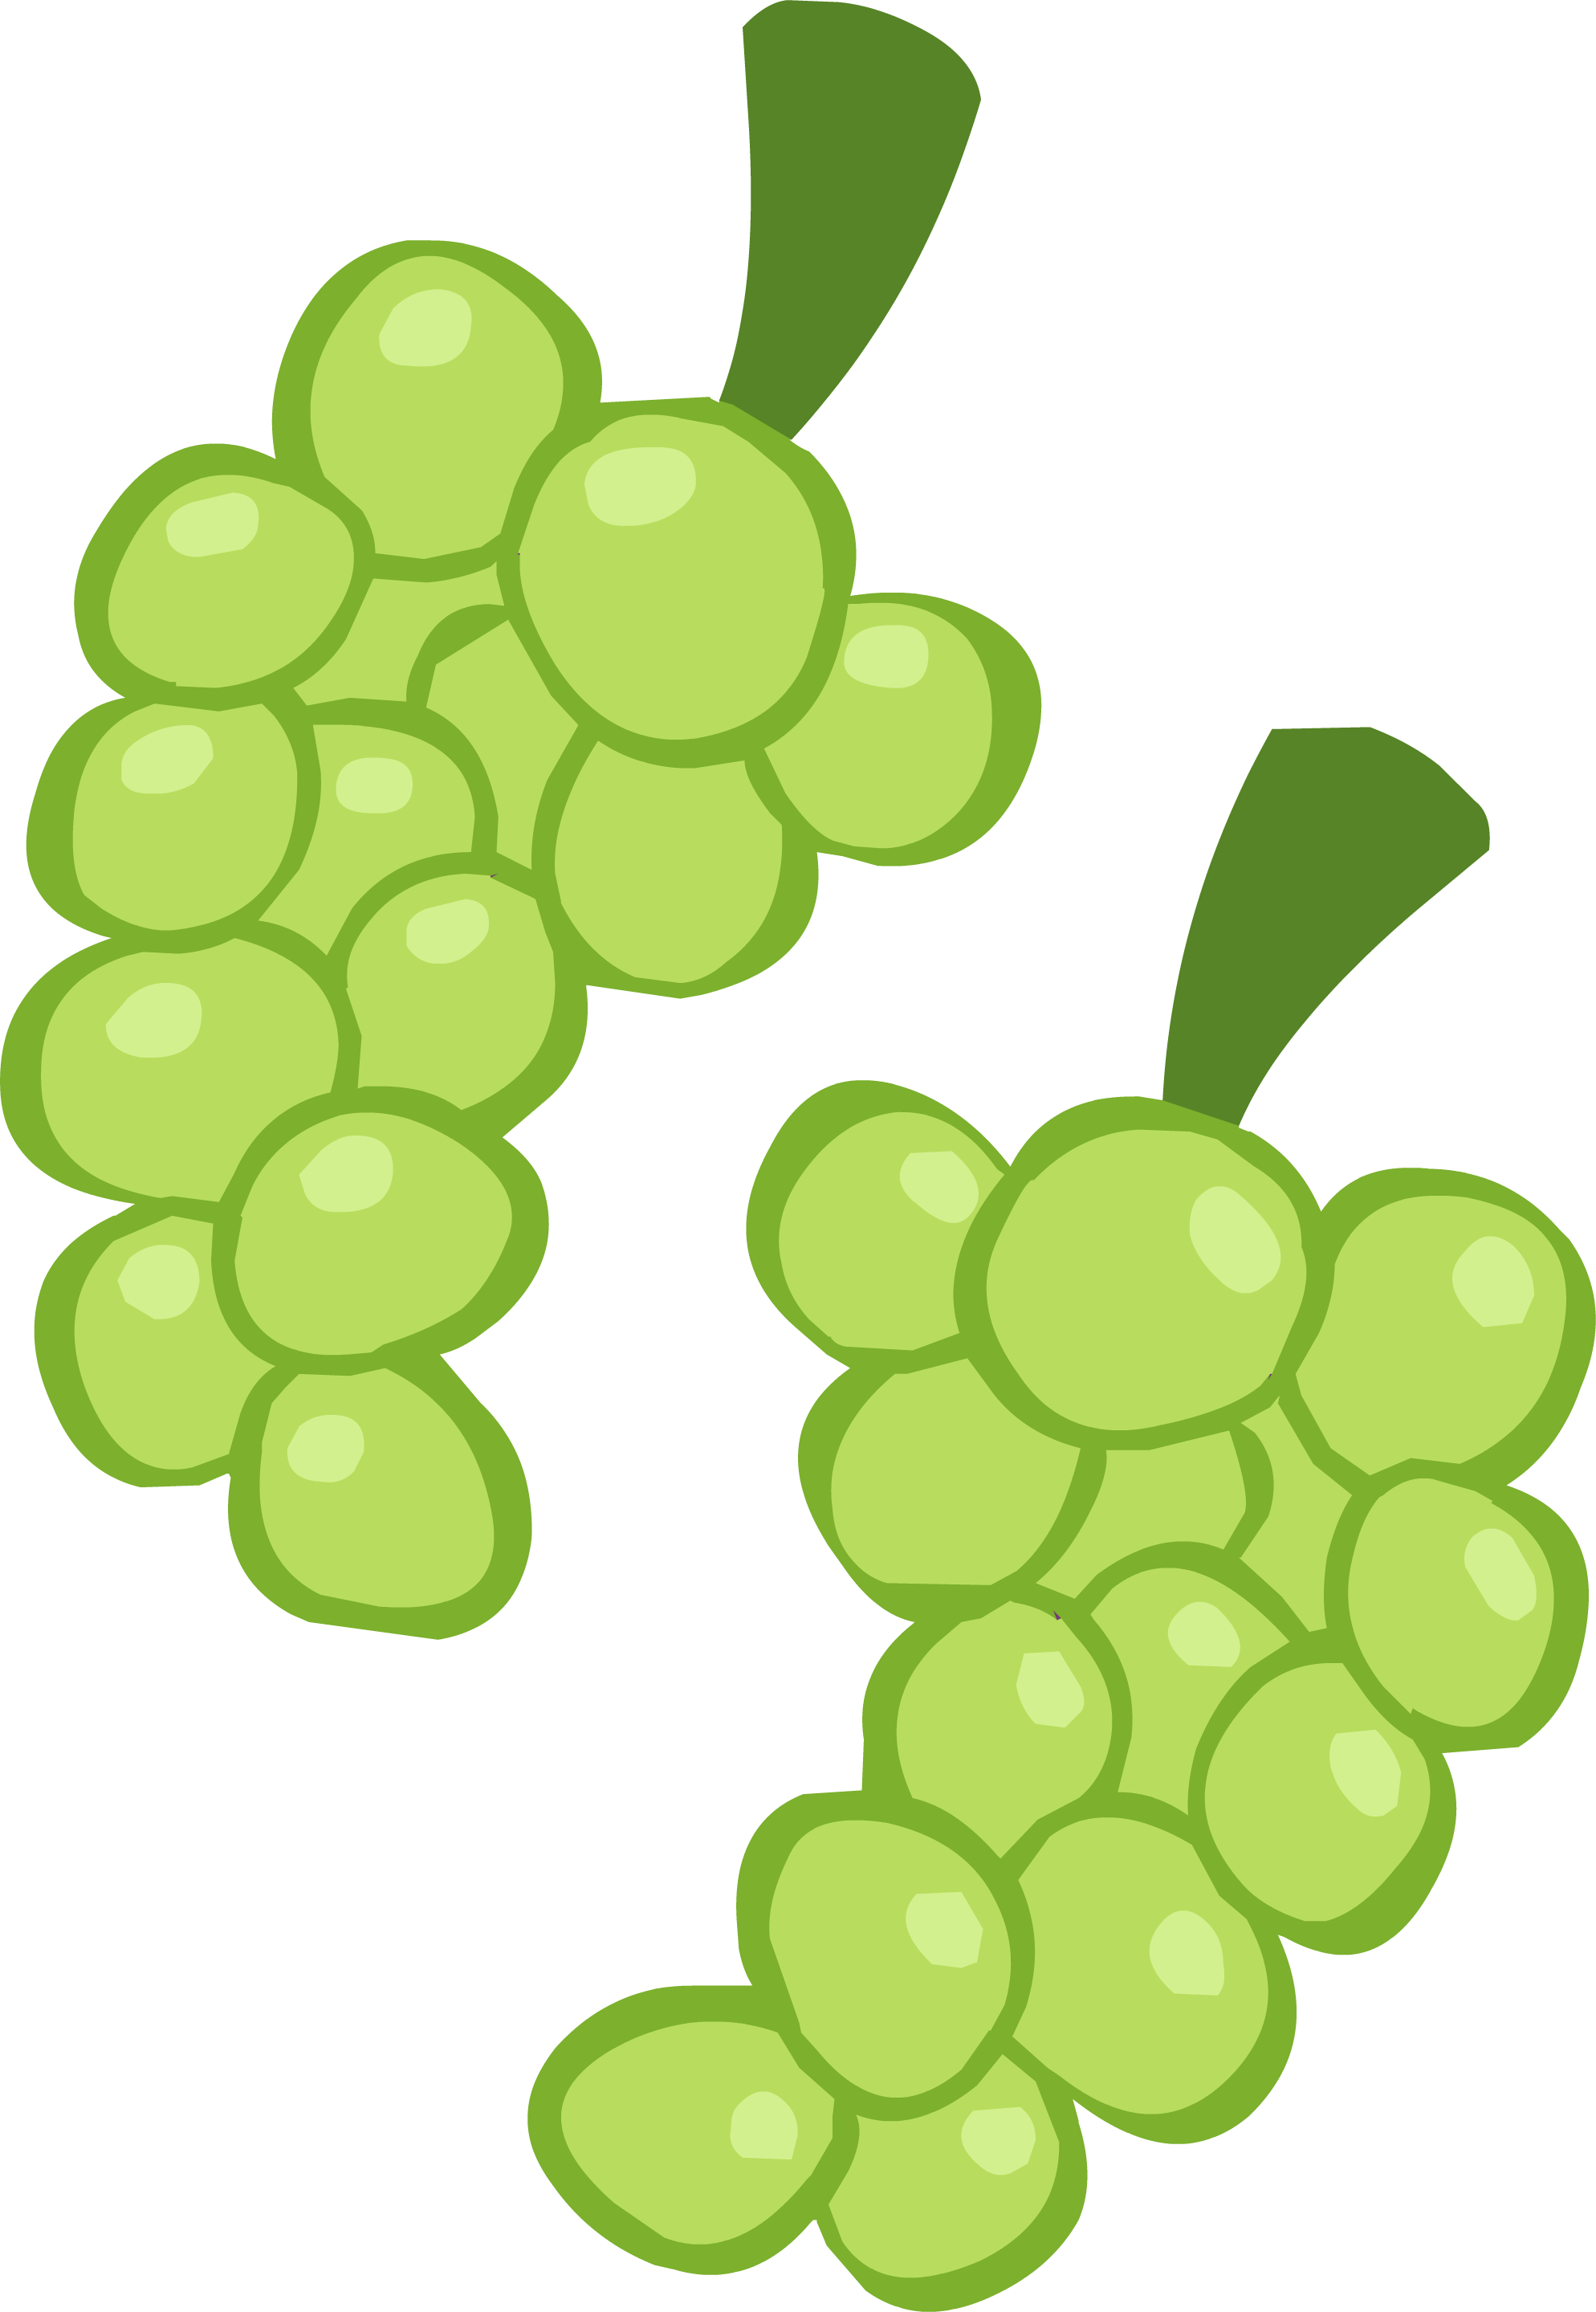 Grape clipart cheese. Image ponymaker grapes png